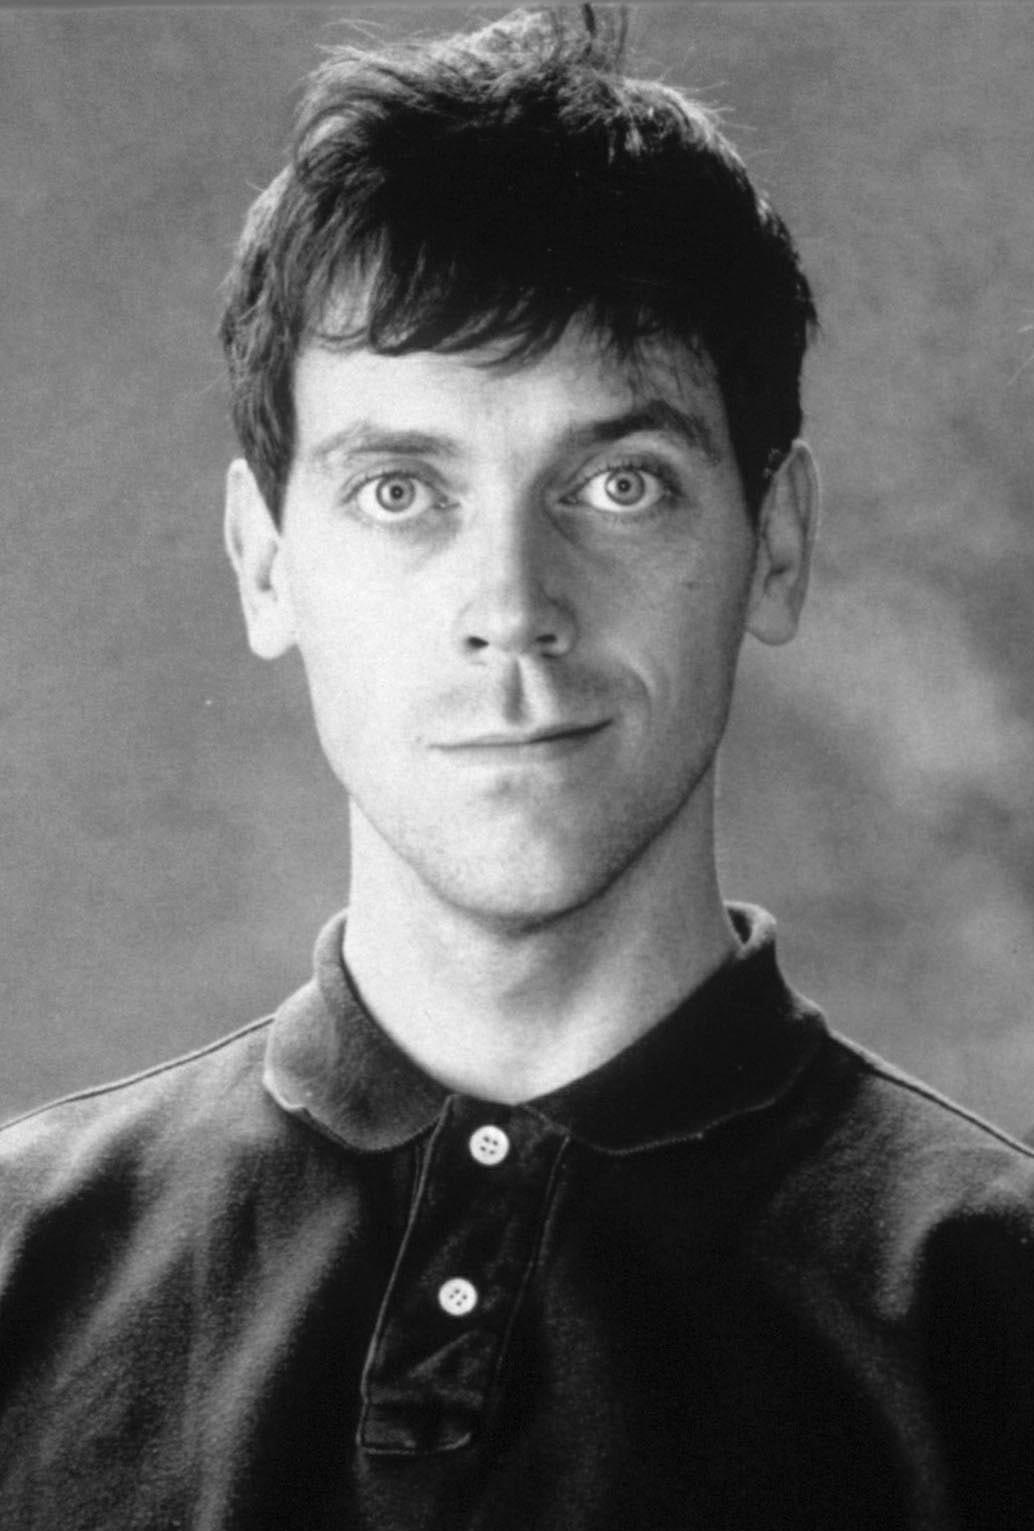 Hugh Laurie Young Phot...